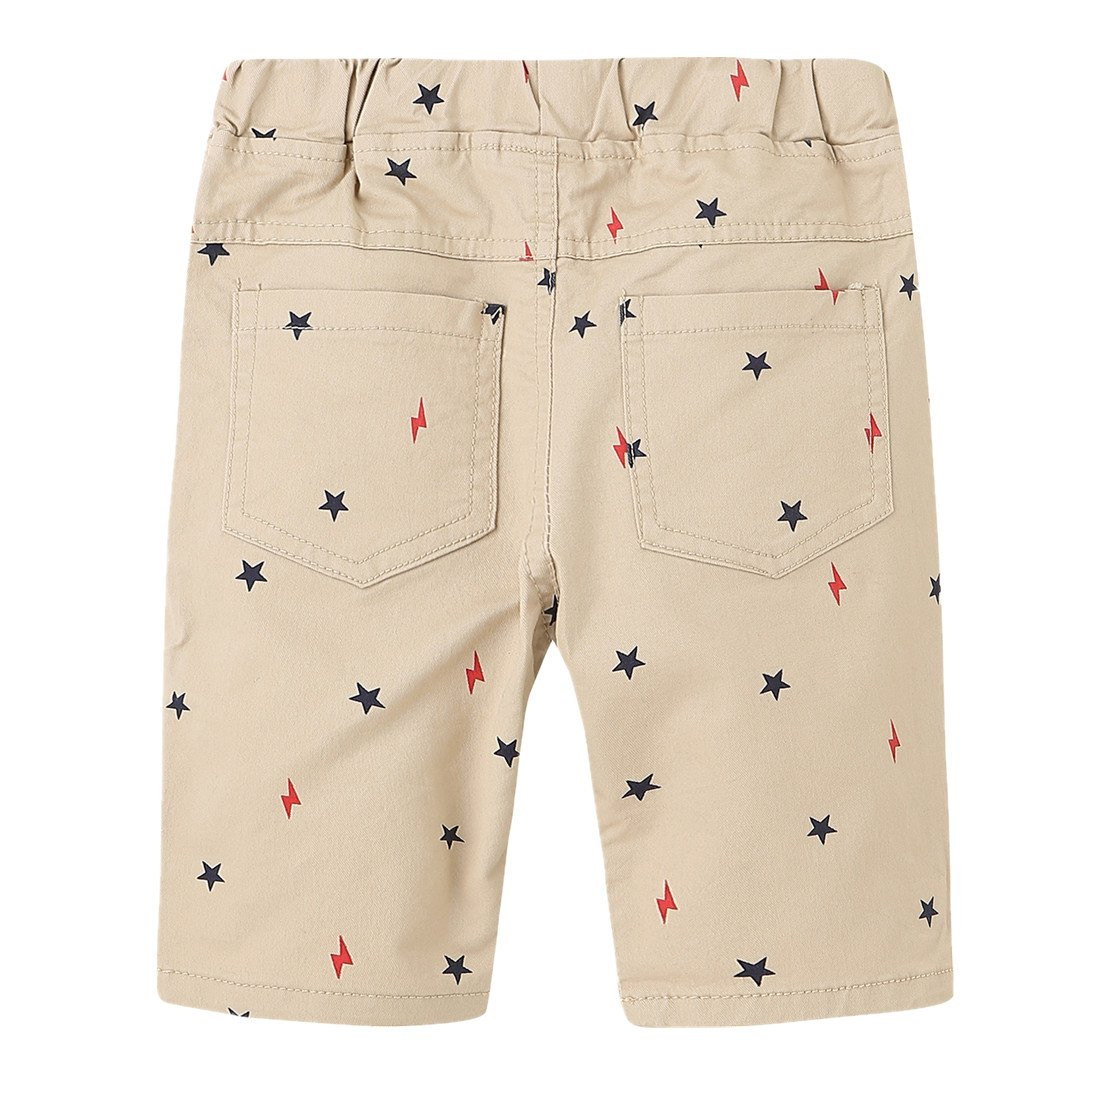 Sooxiwood Little Boys Shorts Casual Stars Pocket Size 6 Khaki